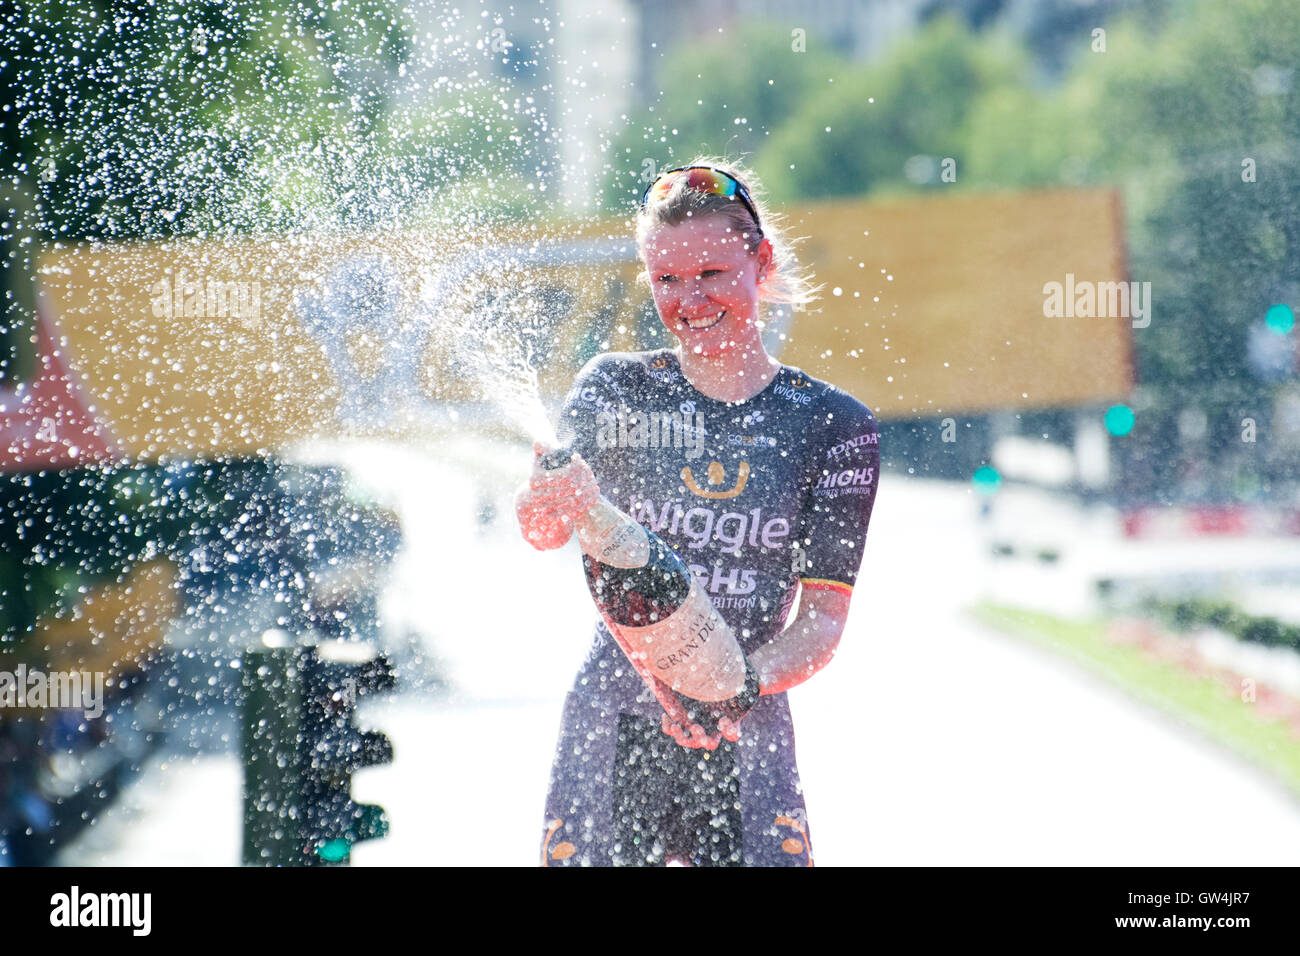 Madrid, Spain. 11th September, 2016. Mia Radotic (Wiggle High5) celebrates her victory at the podium of the one Stock Photo